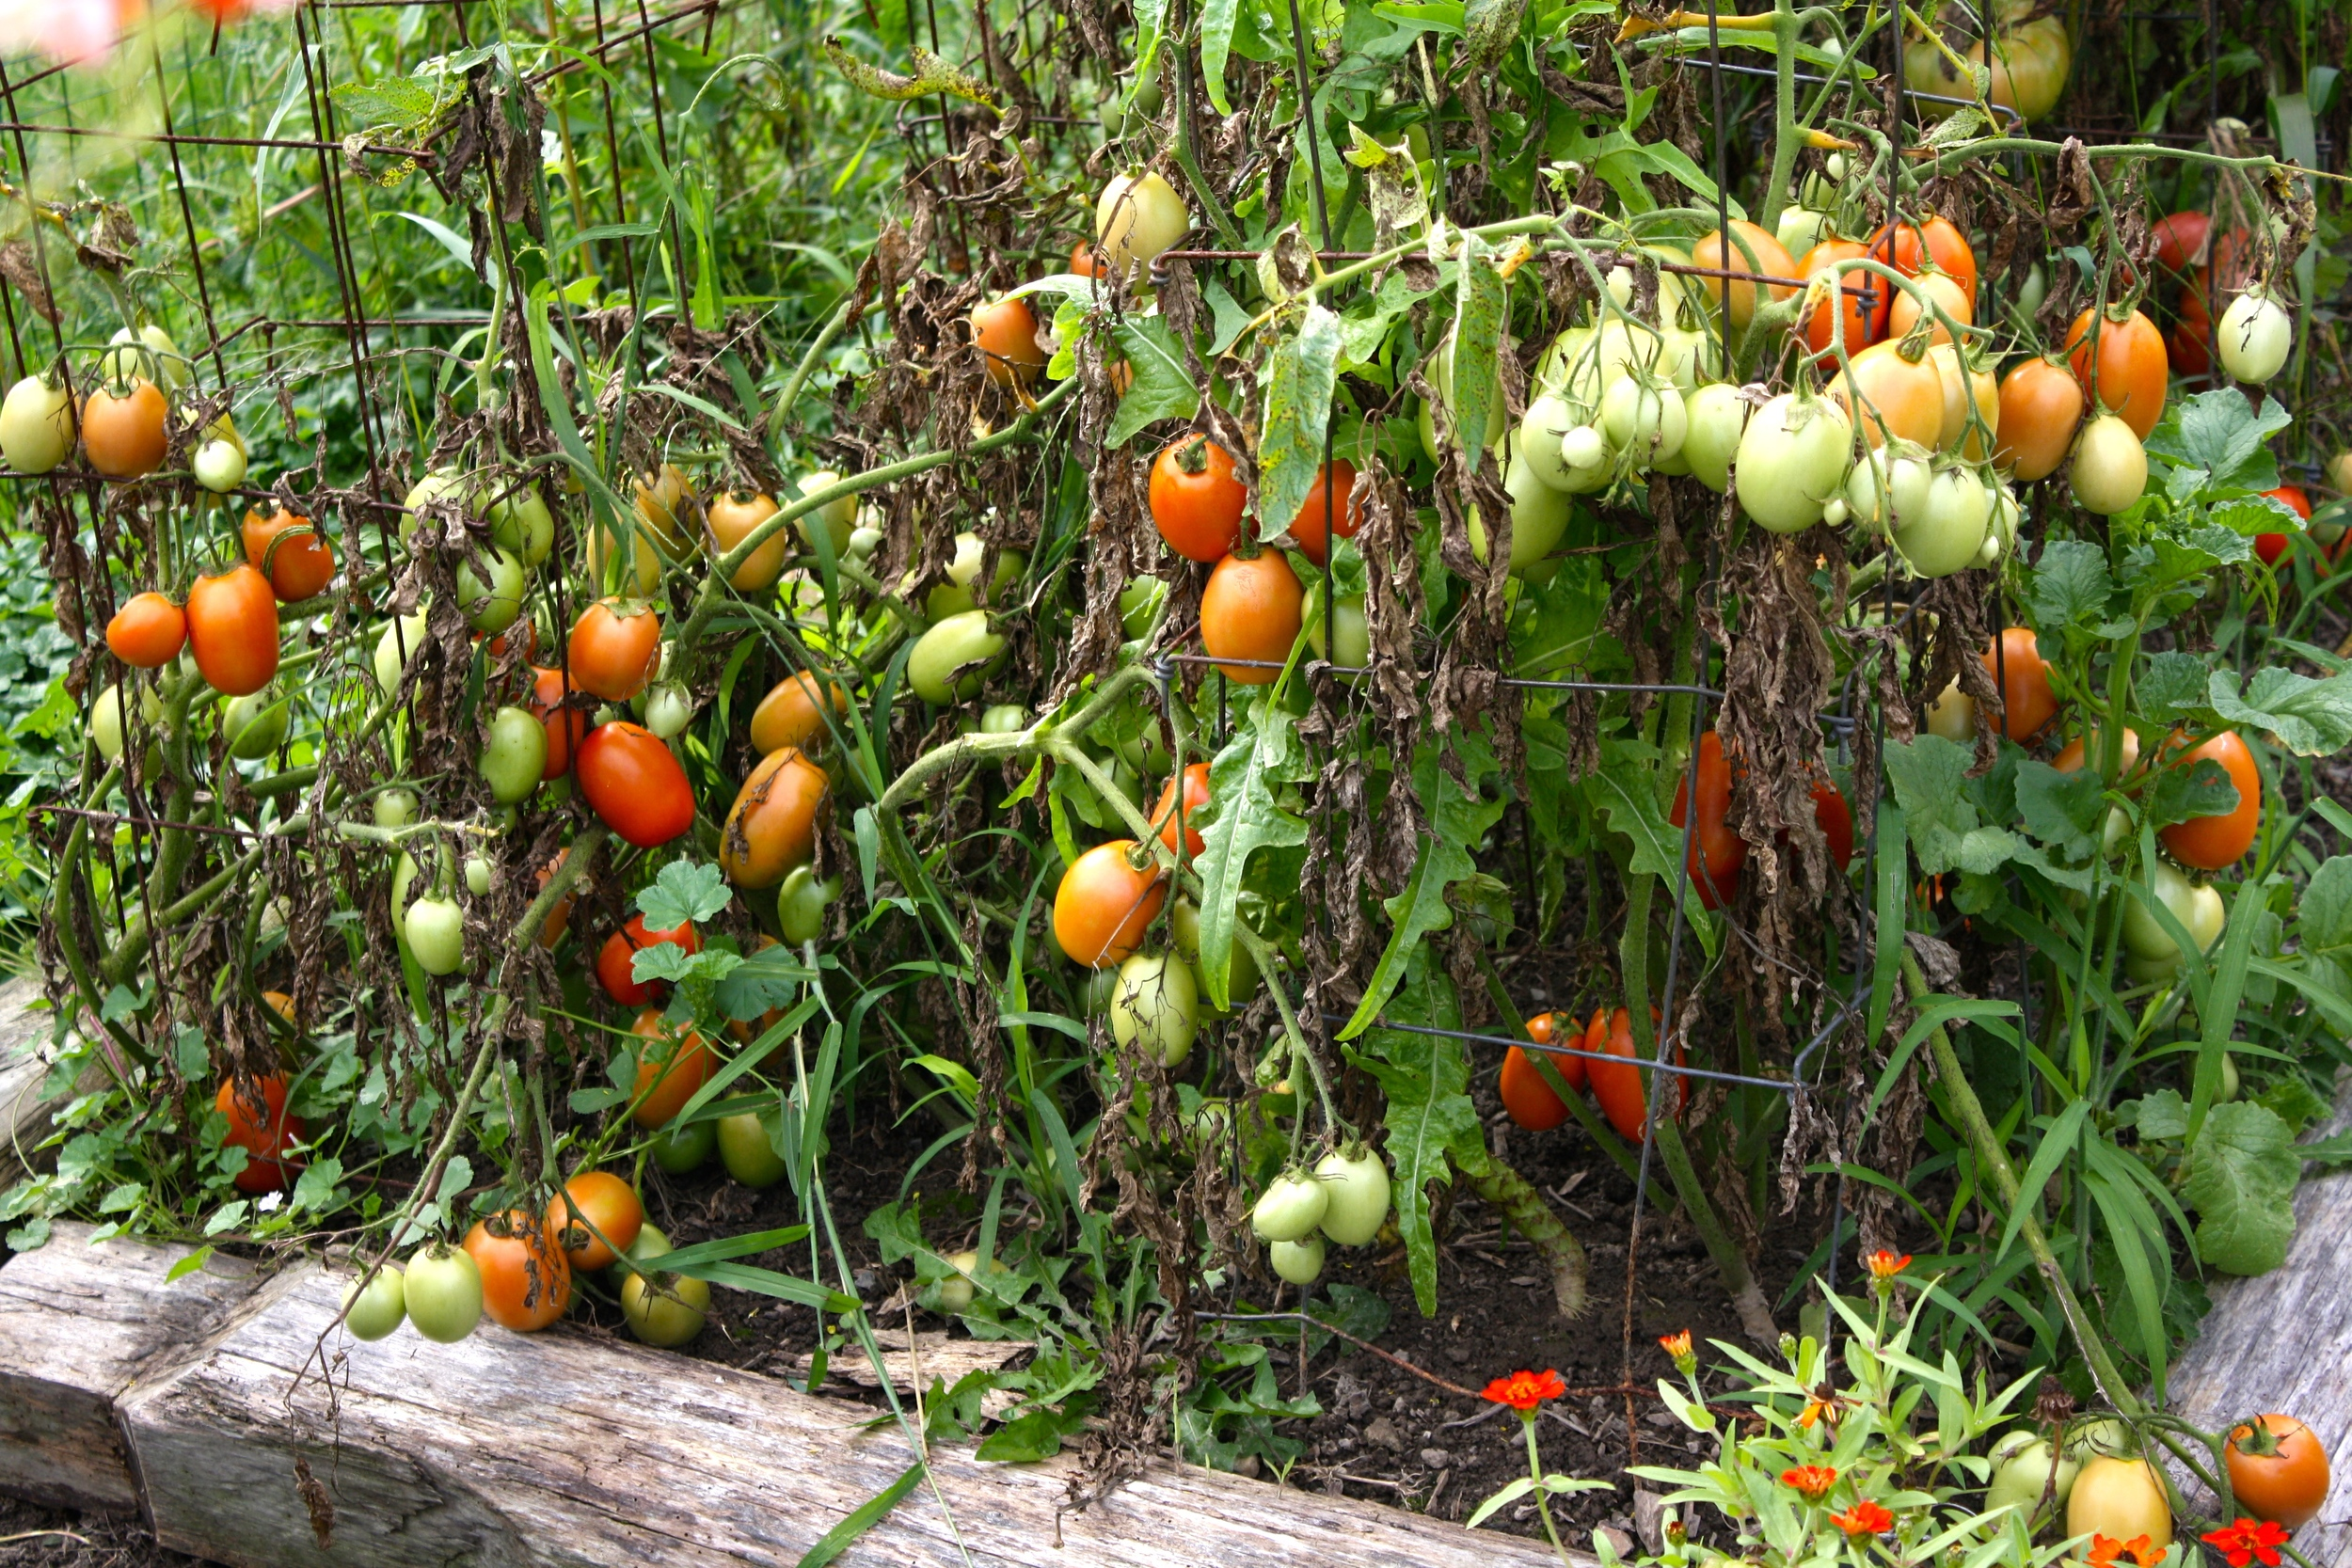 Often what my ORGANIC tomato plants look like by early September. Fruit is still fine though.